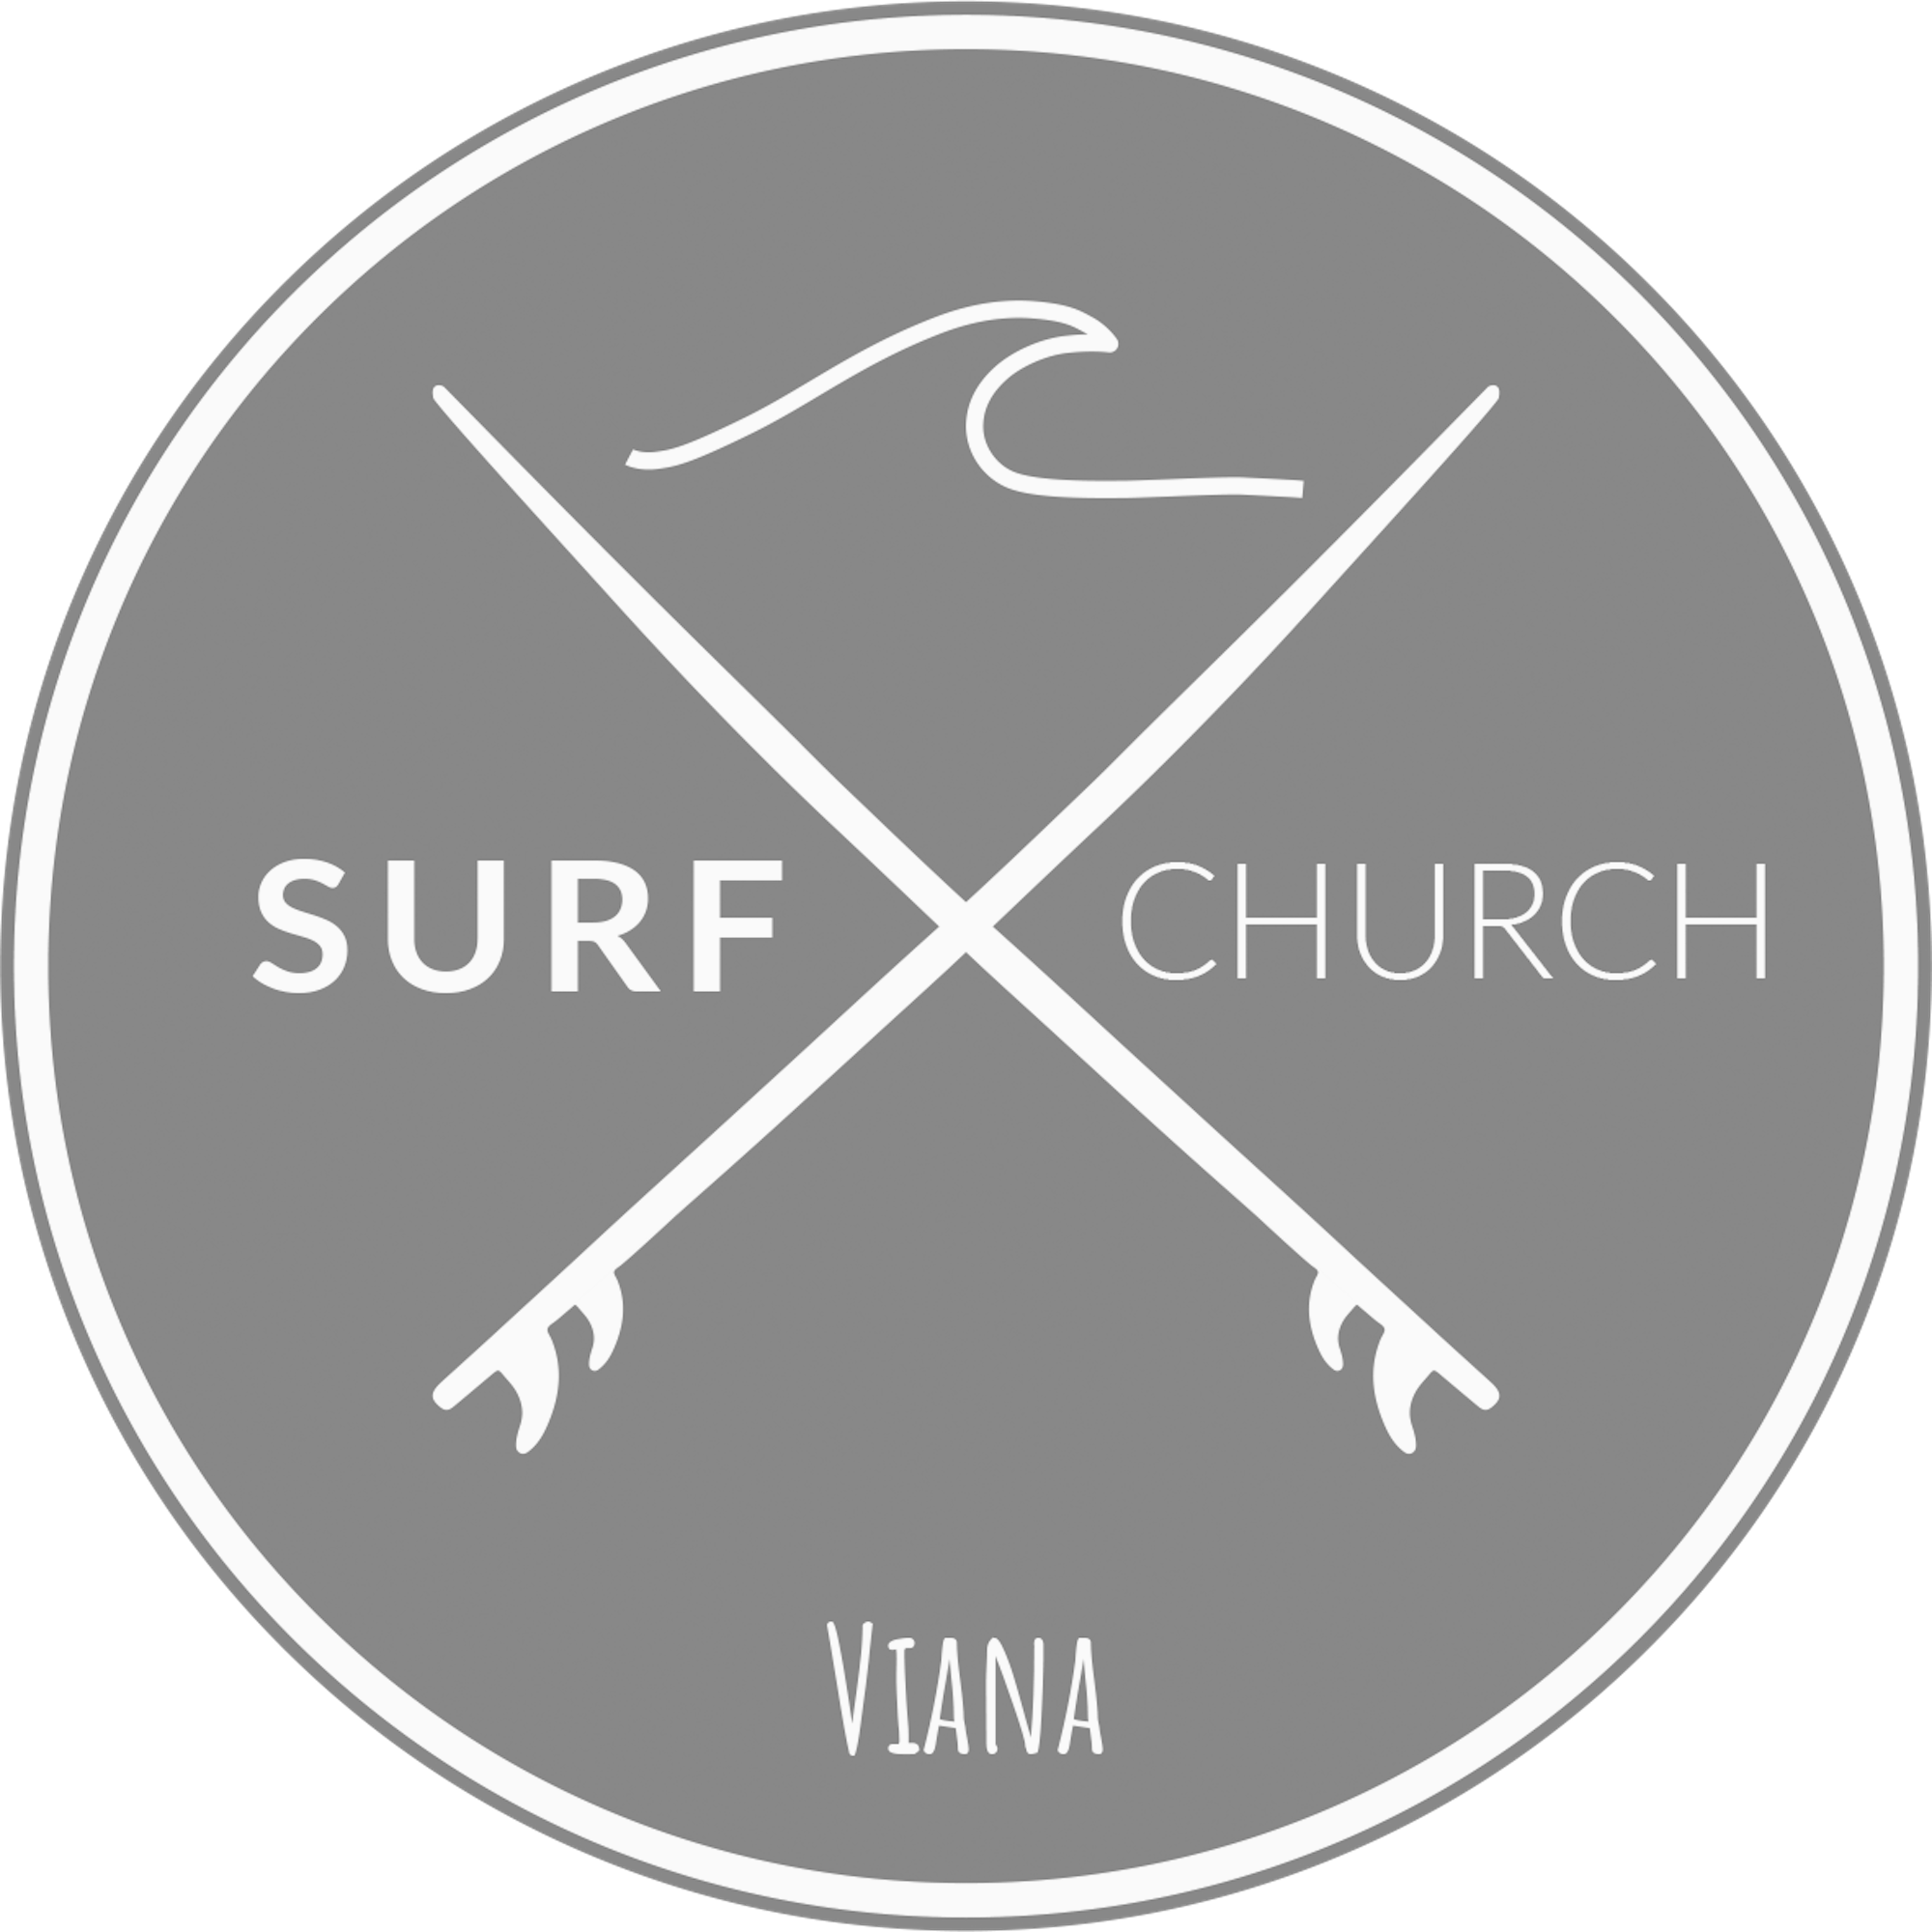 Surfchurch-Viana_grey